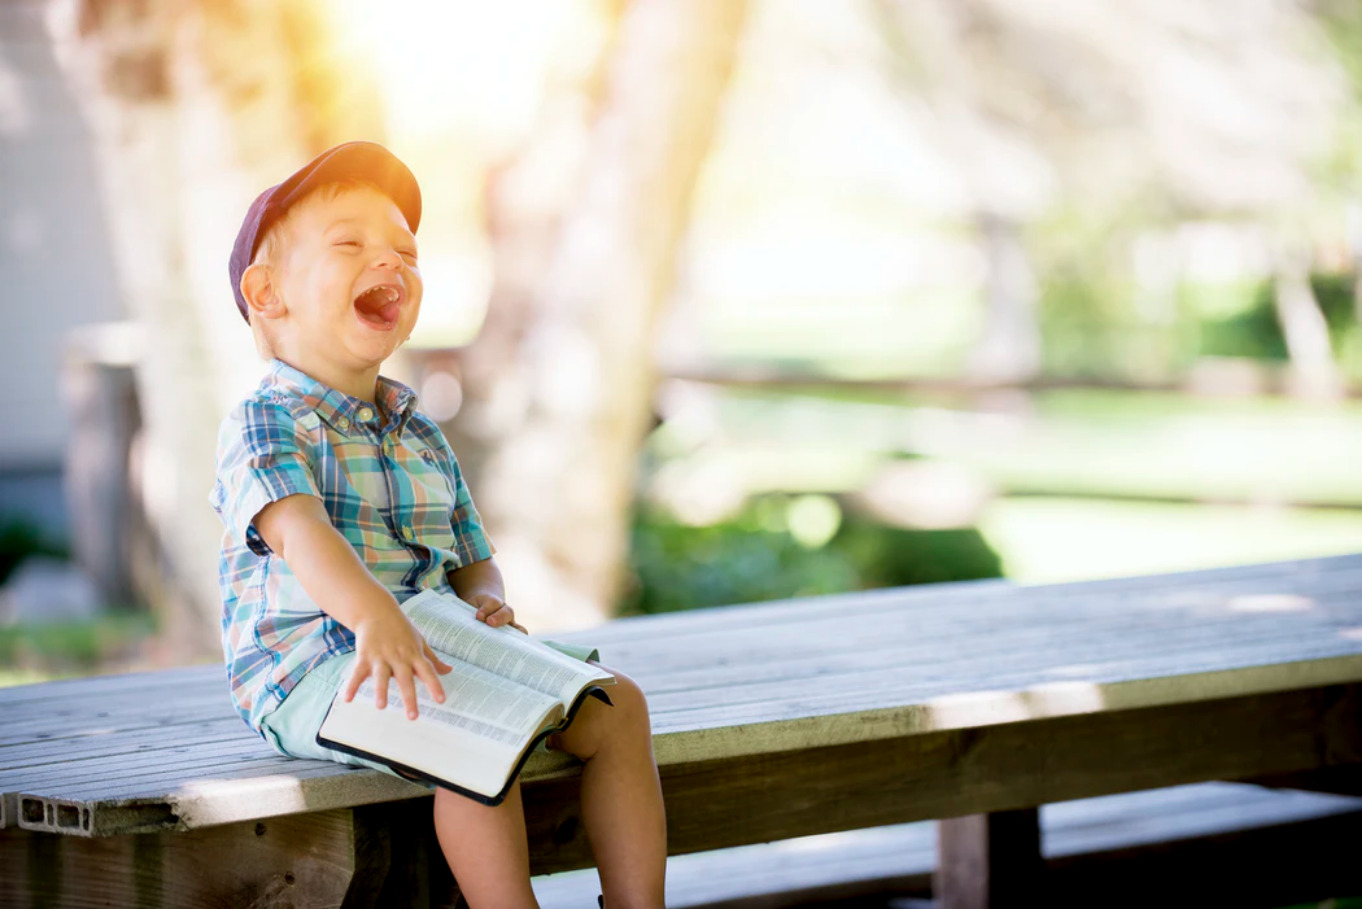 boy-laughing-on-the-bench